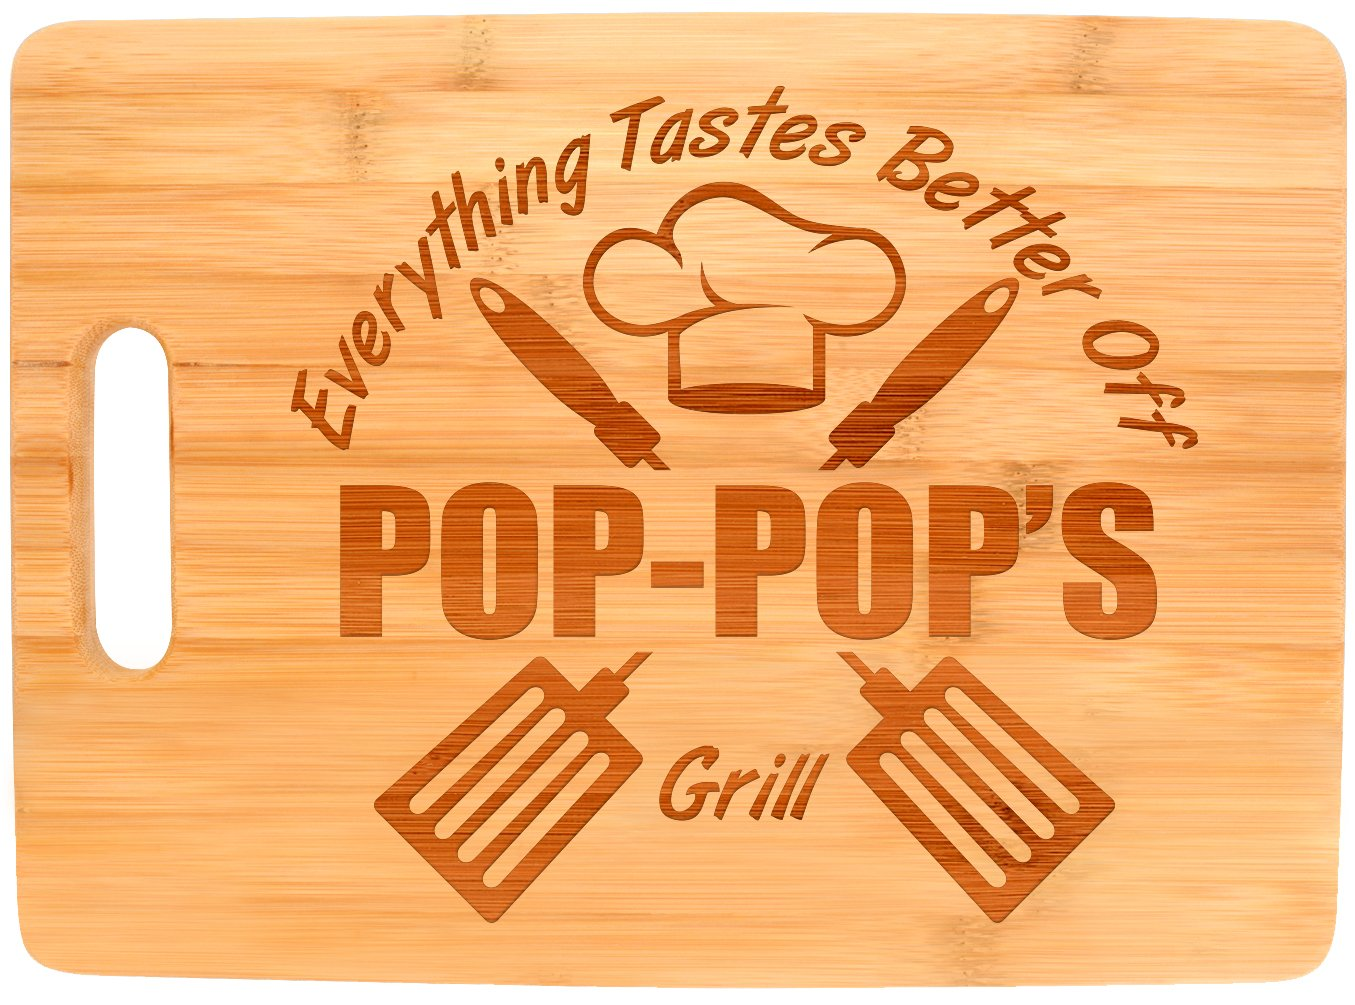 Laser Engraved Cutting Board Everything Tastes Better Off Pop-Pop's Grill Gifts for Grandpa Grilling Gifts for Chefs Pop-Pop Birthday Gift Big Rectangle Bamboo Cutting Board